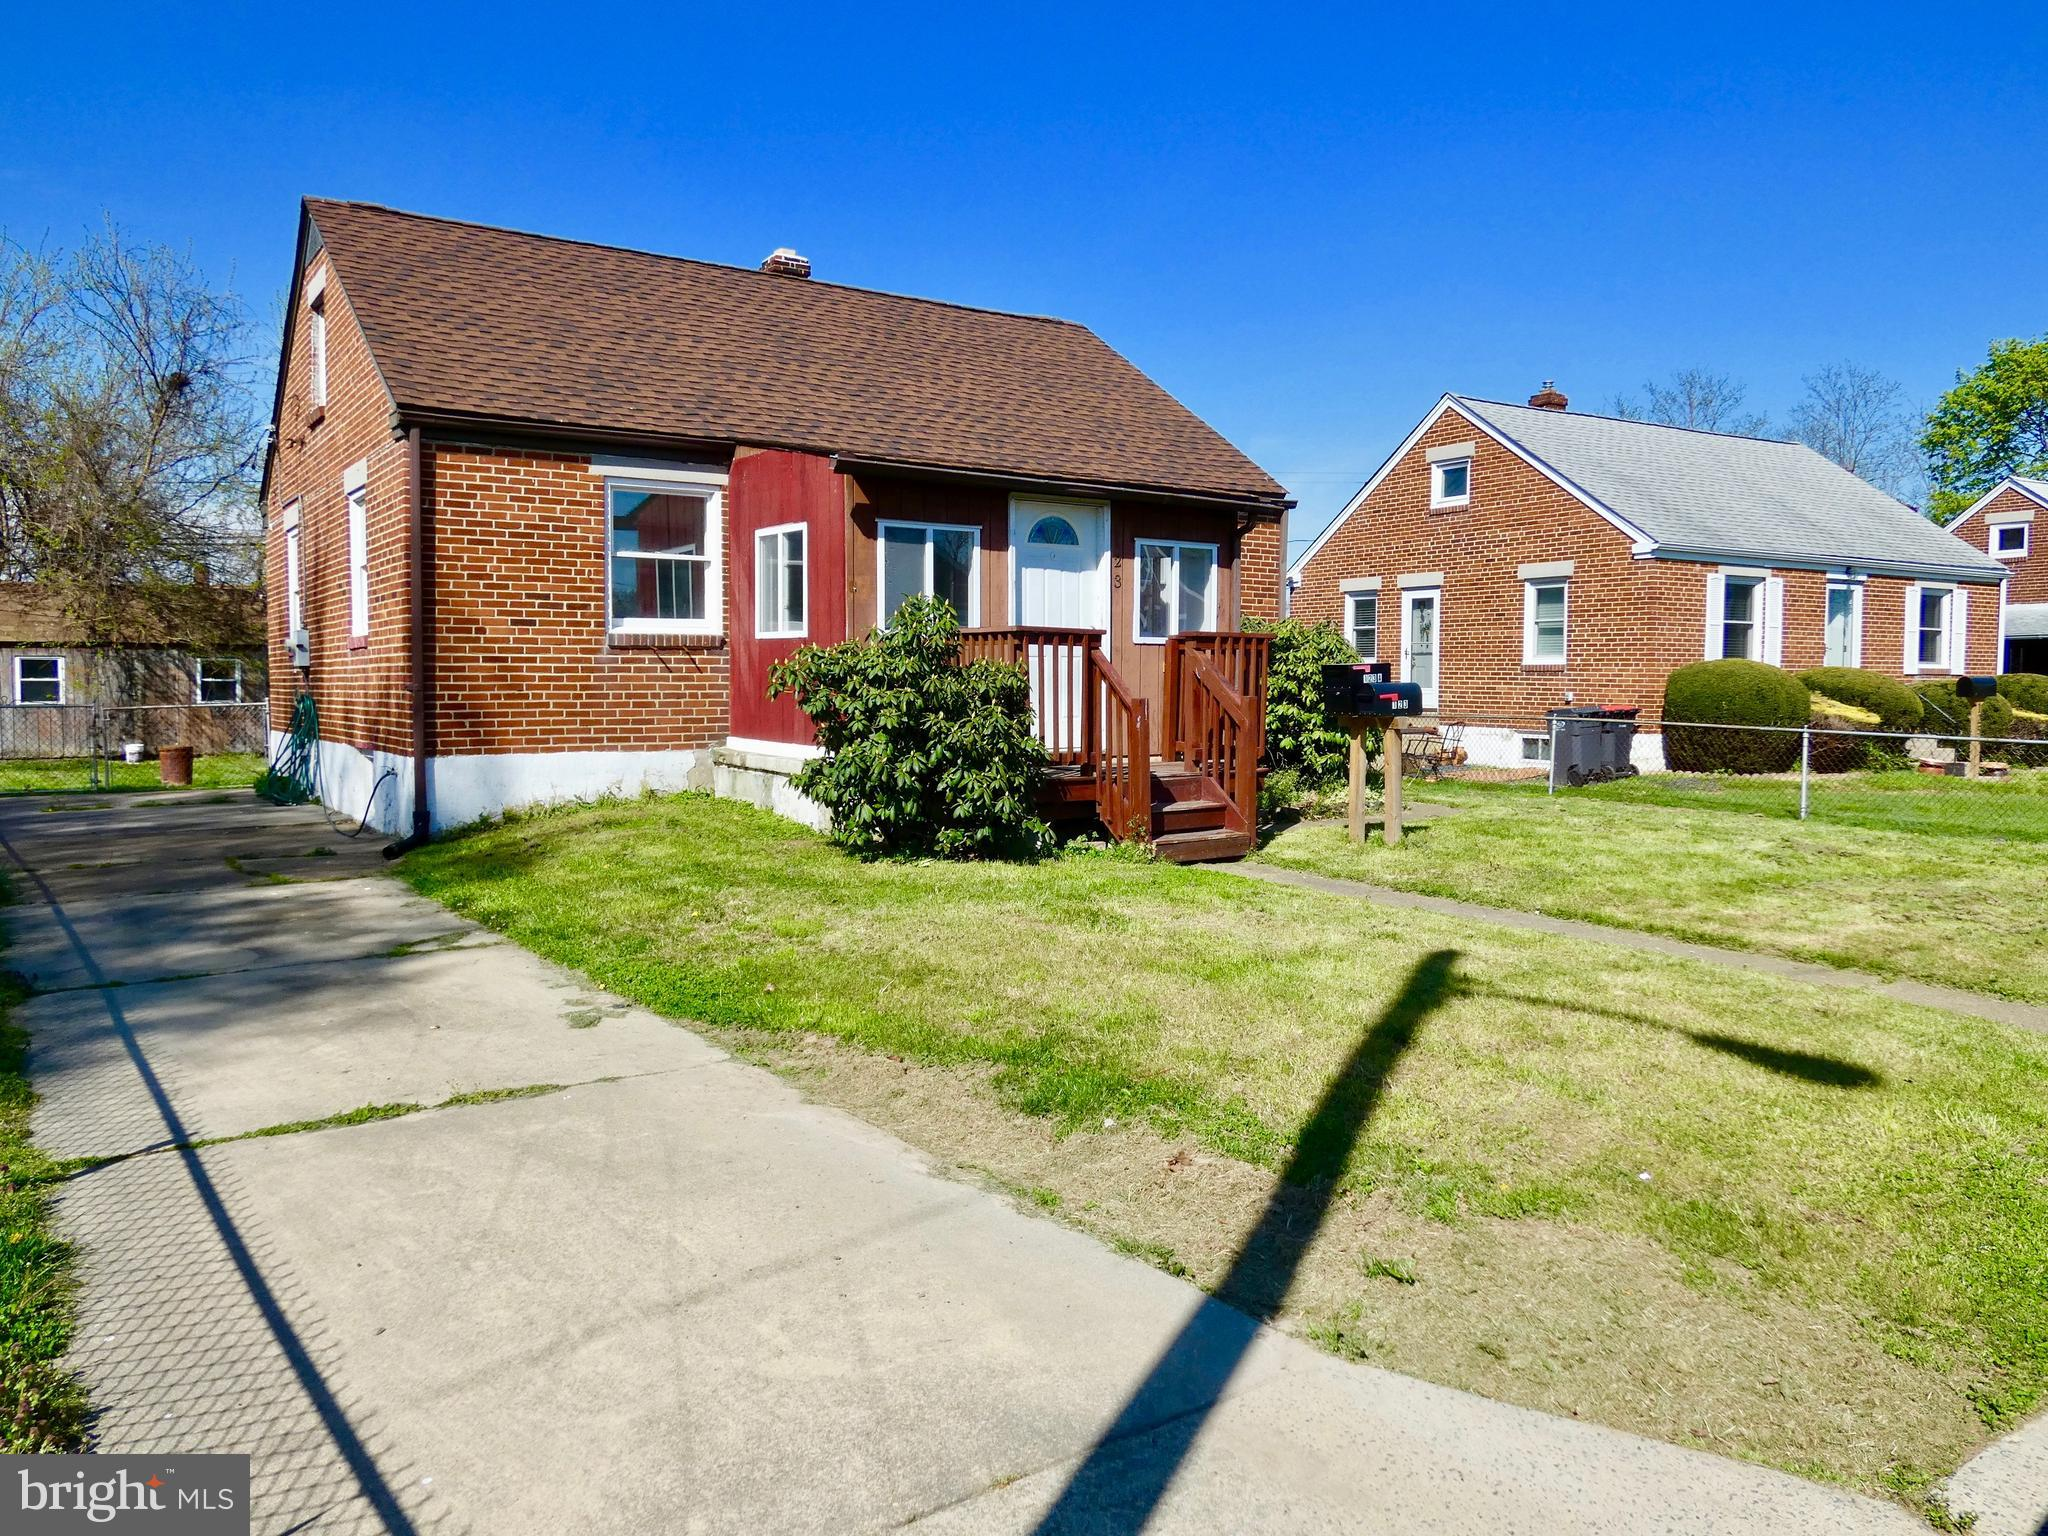 This all brick exterior 3Br/1.5Ba home w/ front & rear additions has been recently updated & is read